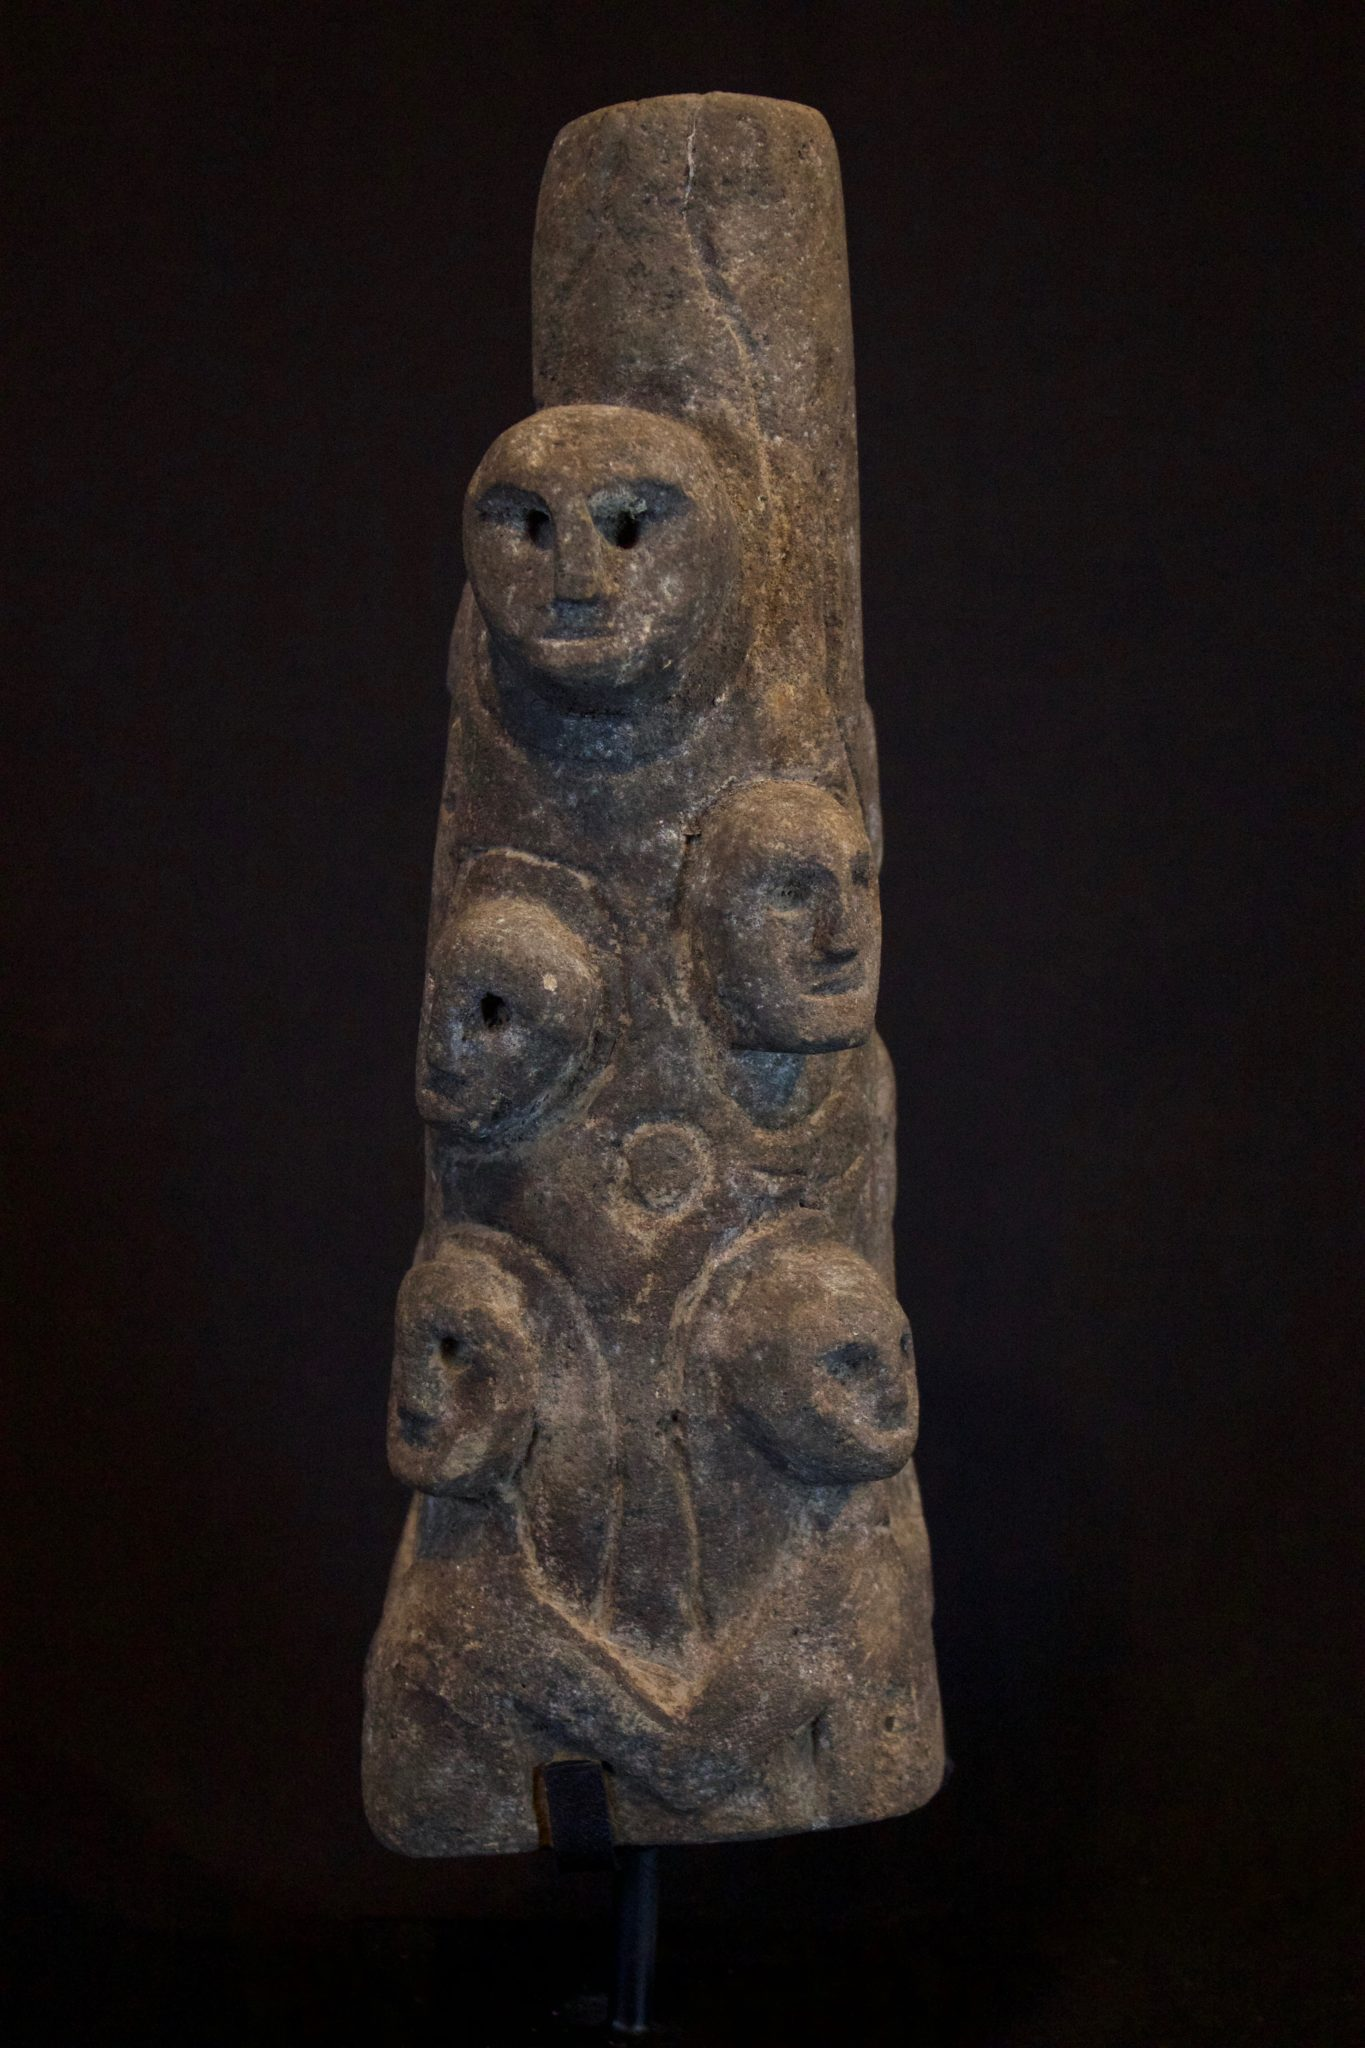 "Ancestral Offering Statue, Indonesia, Timor Island, Boti village, Mid 20th century Wood. This totem-like carving of many ancestor effigies is used by shamans in contacting spirits and healing rituals. 11 ½"" x 4"" x 3 ½"", sold"